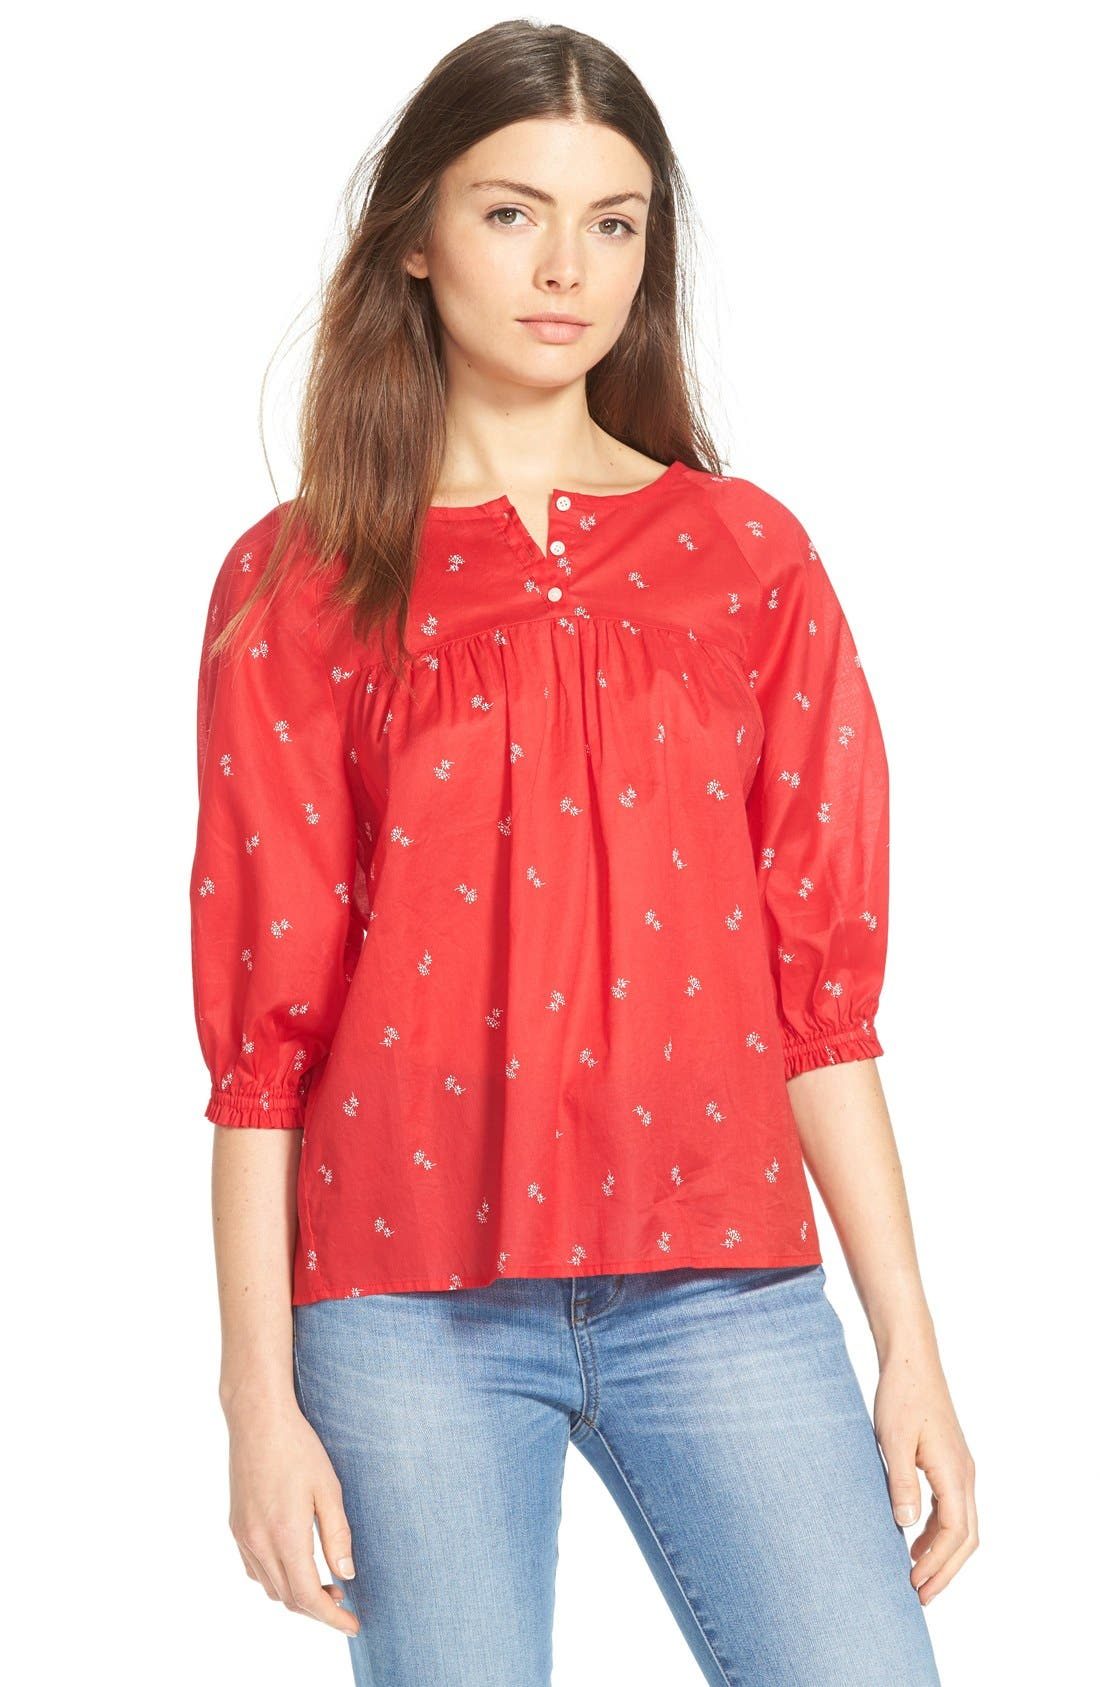 Alternate Image 1 Selected - Madewell 'Bouquet Scatter' Shirred Peasant Top